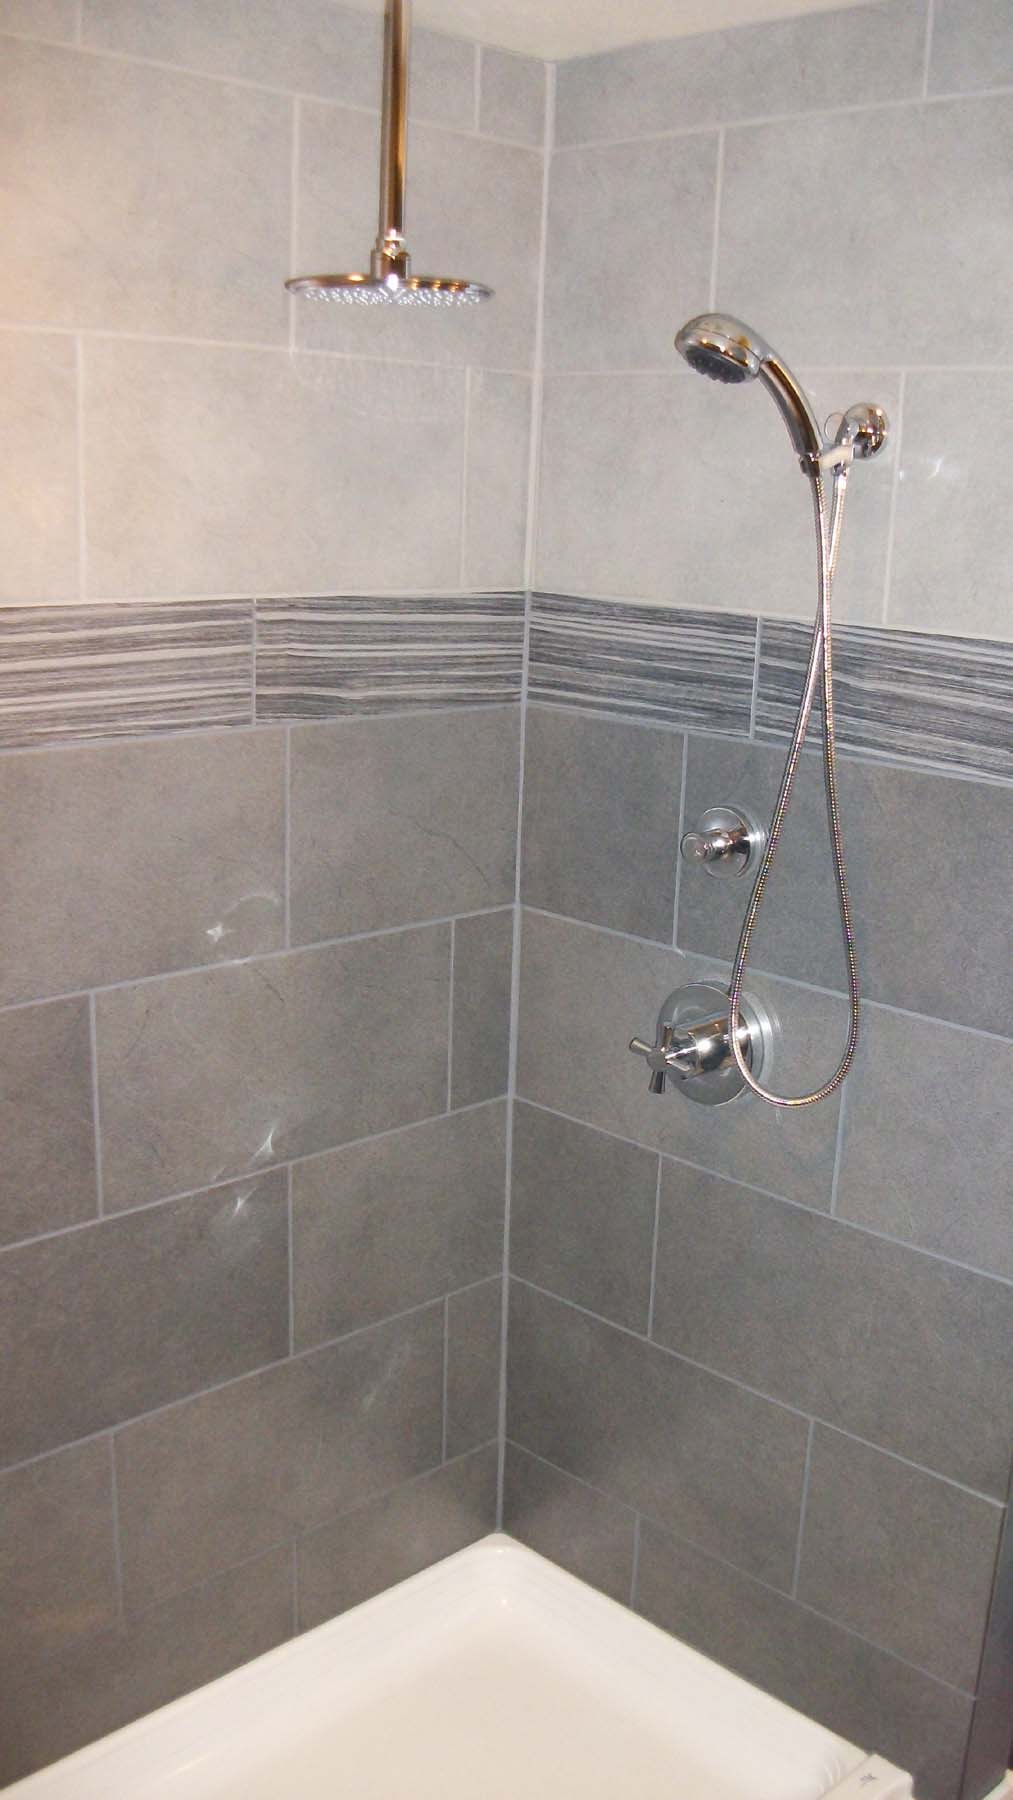 Bathroom Tiled Shower Design Ideas ~ Wonderful shower tile and beautiful lavs notes from the